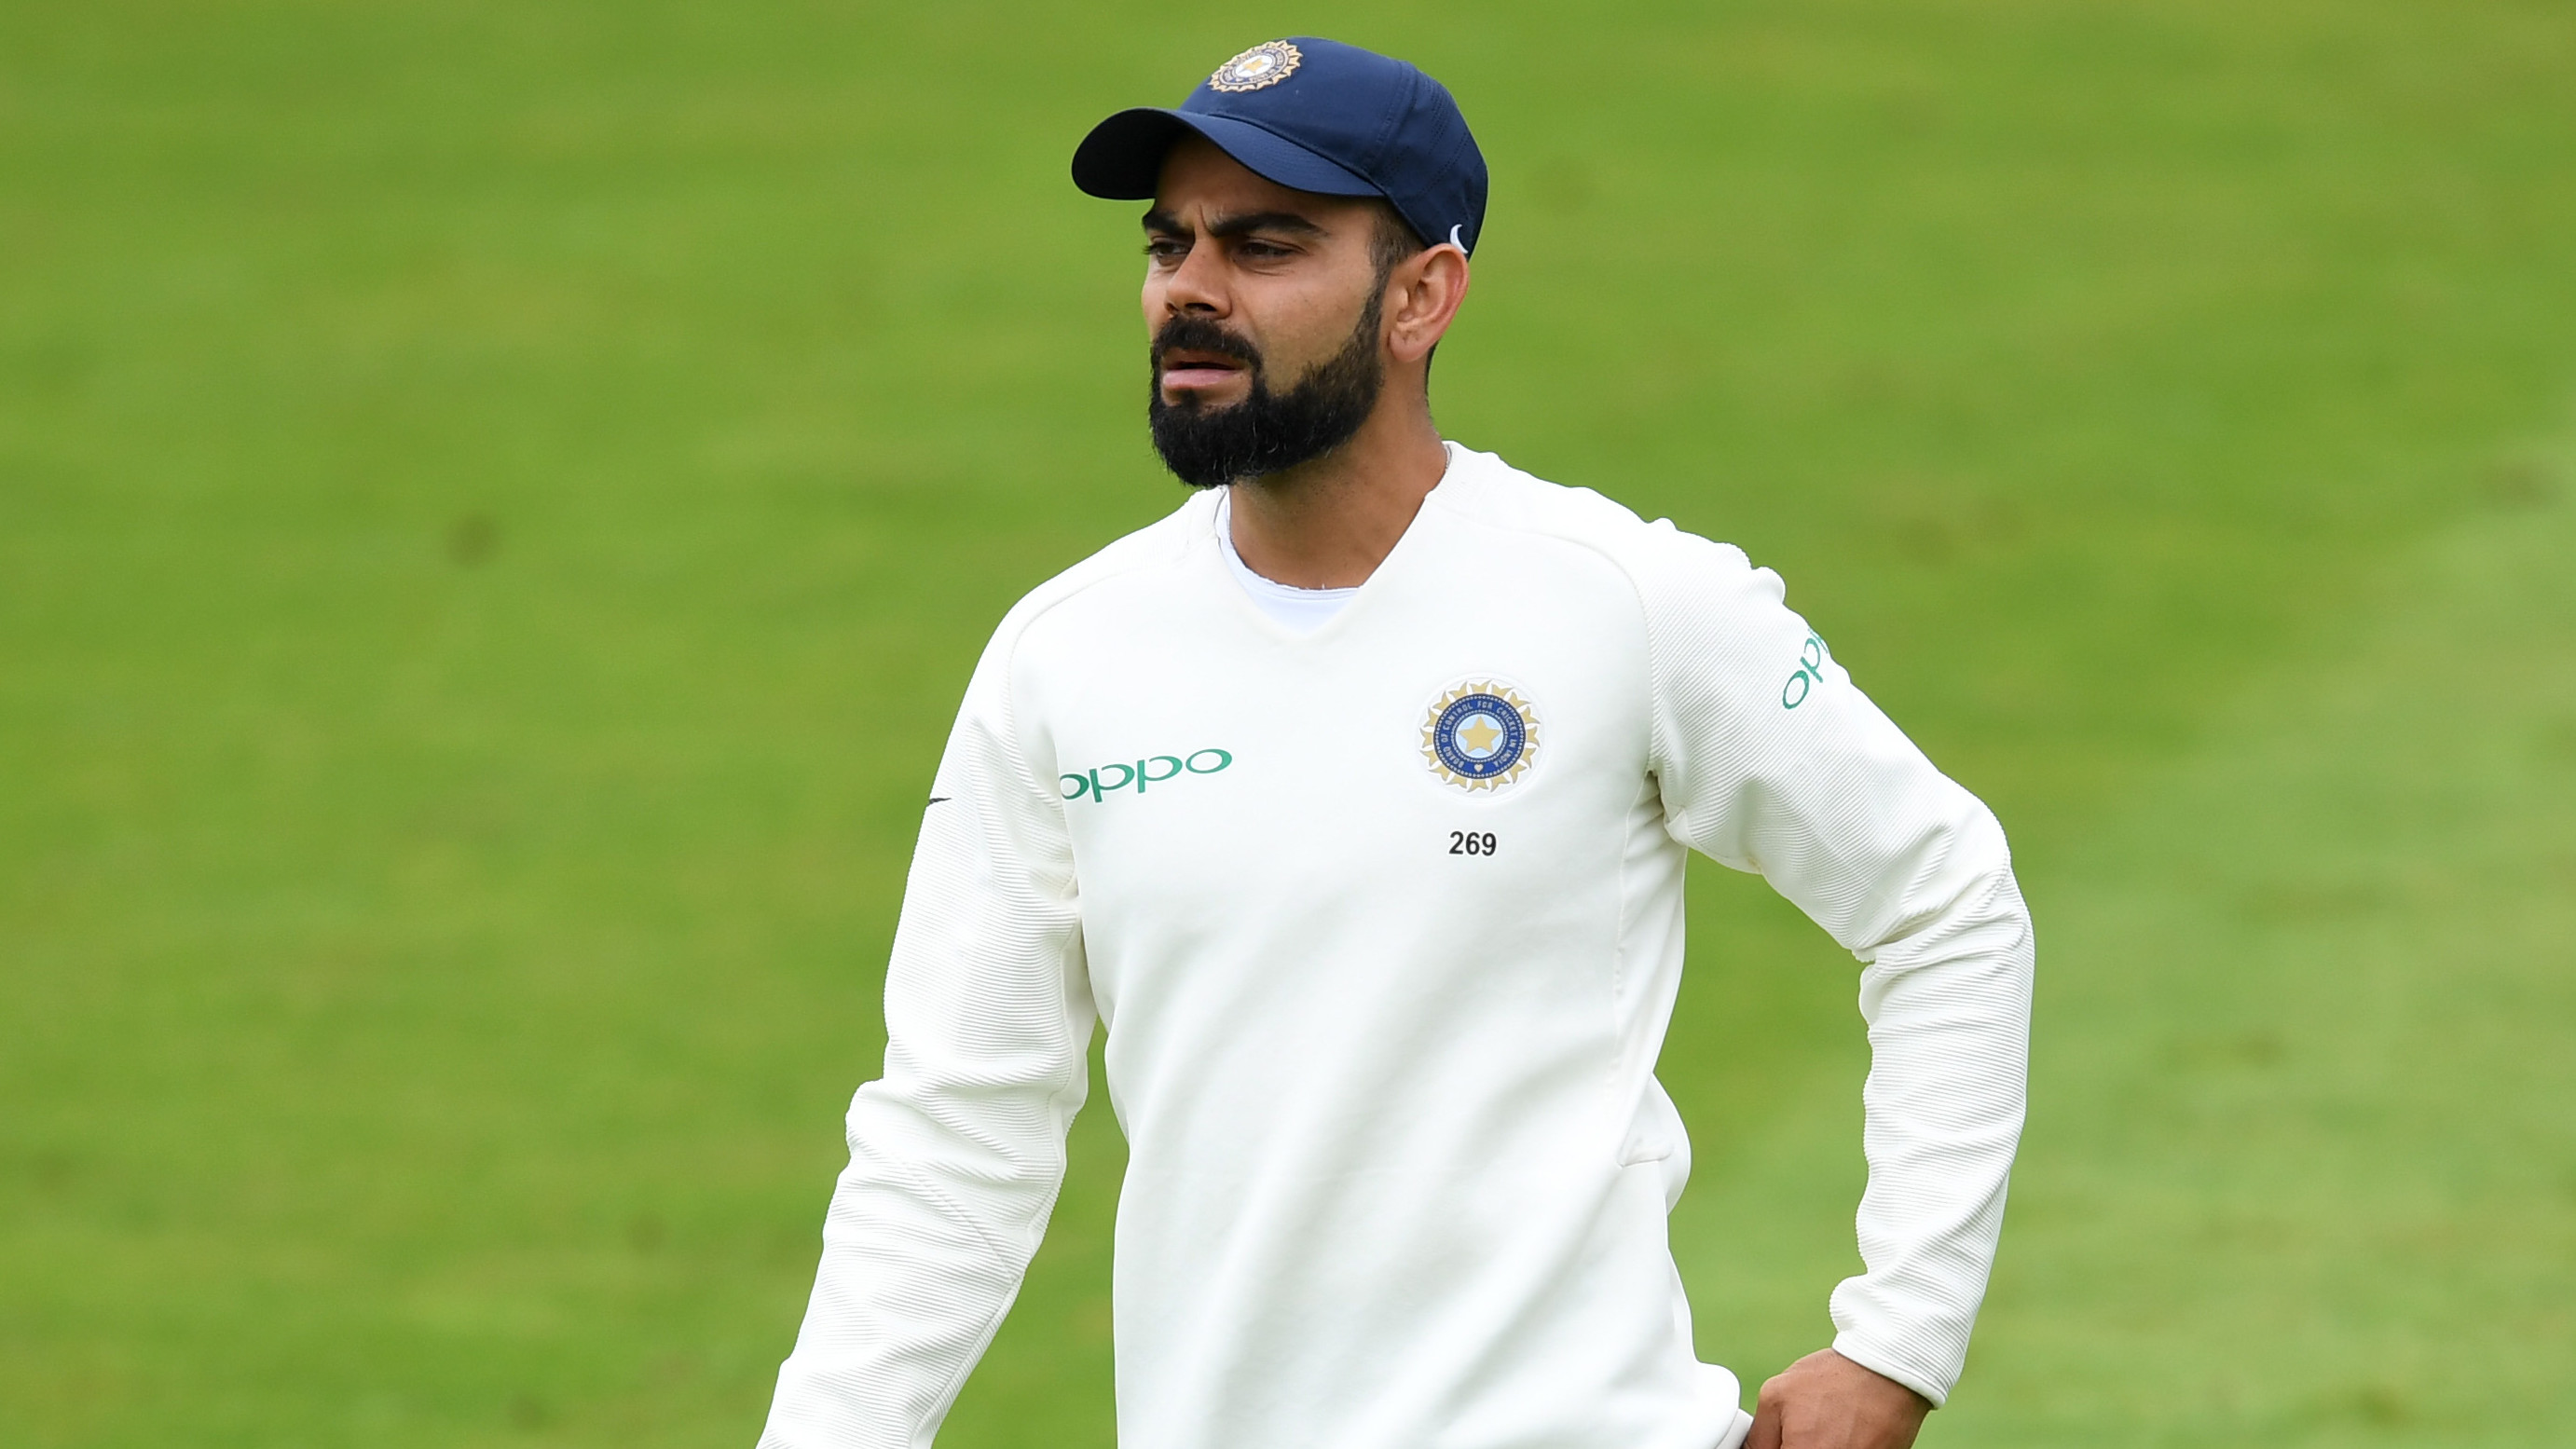 ENG vs IND 2018: Cannot assure players of their place in the side, says Virat Kohli